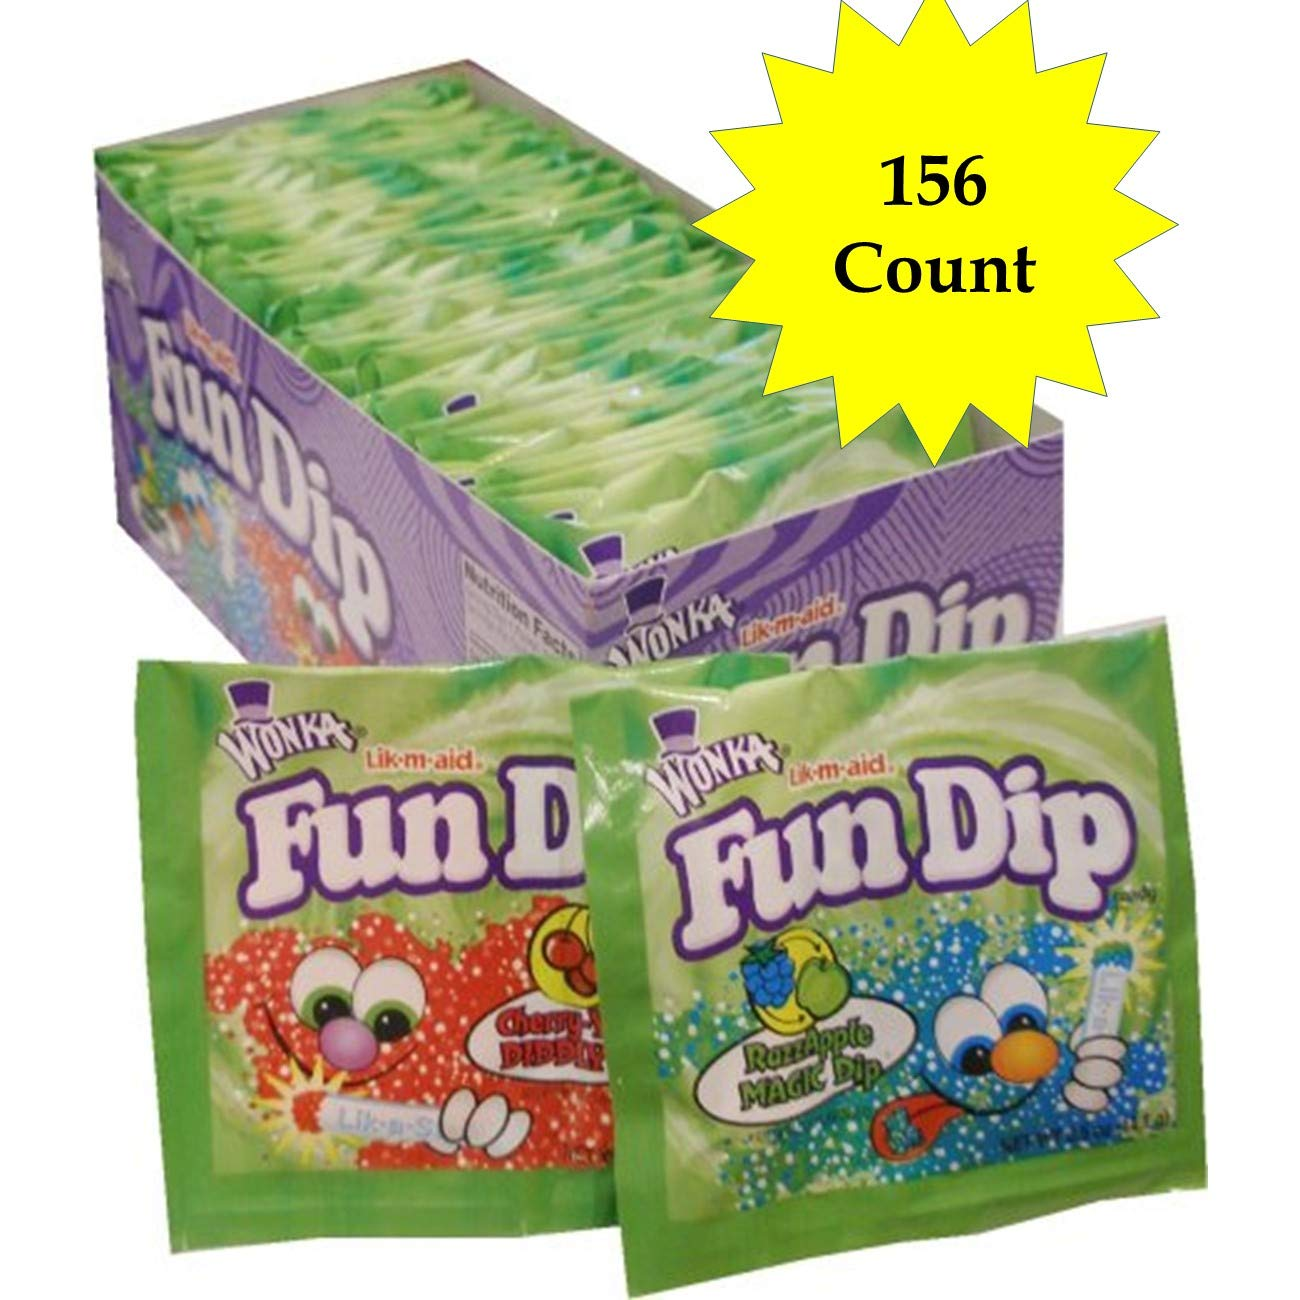 Fun Dip Assorted Flavor Party Pack - 156 Piece Pack, 0.43 oz Packets (156 Piece) by LIK-M-AID Fun Dip